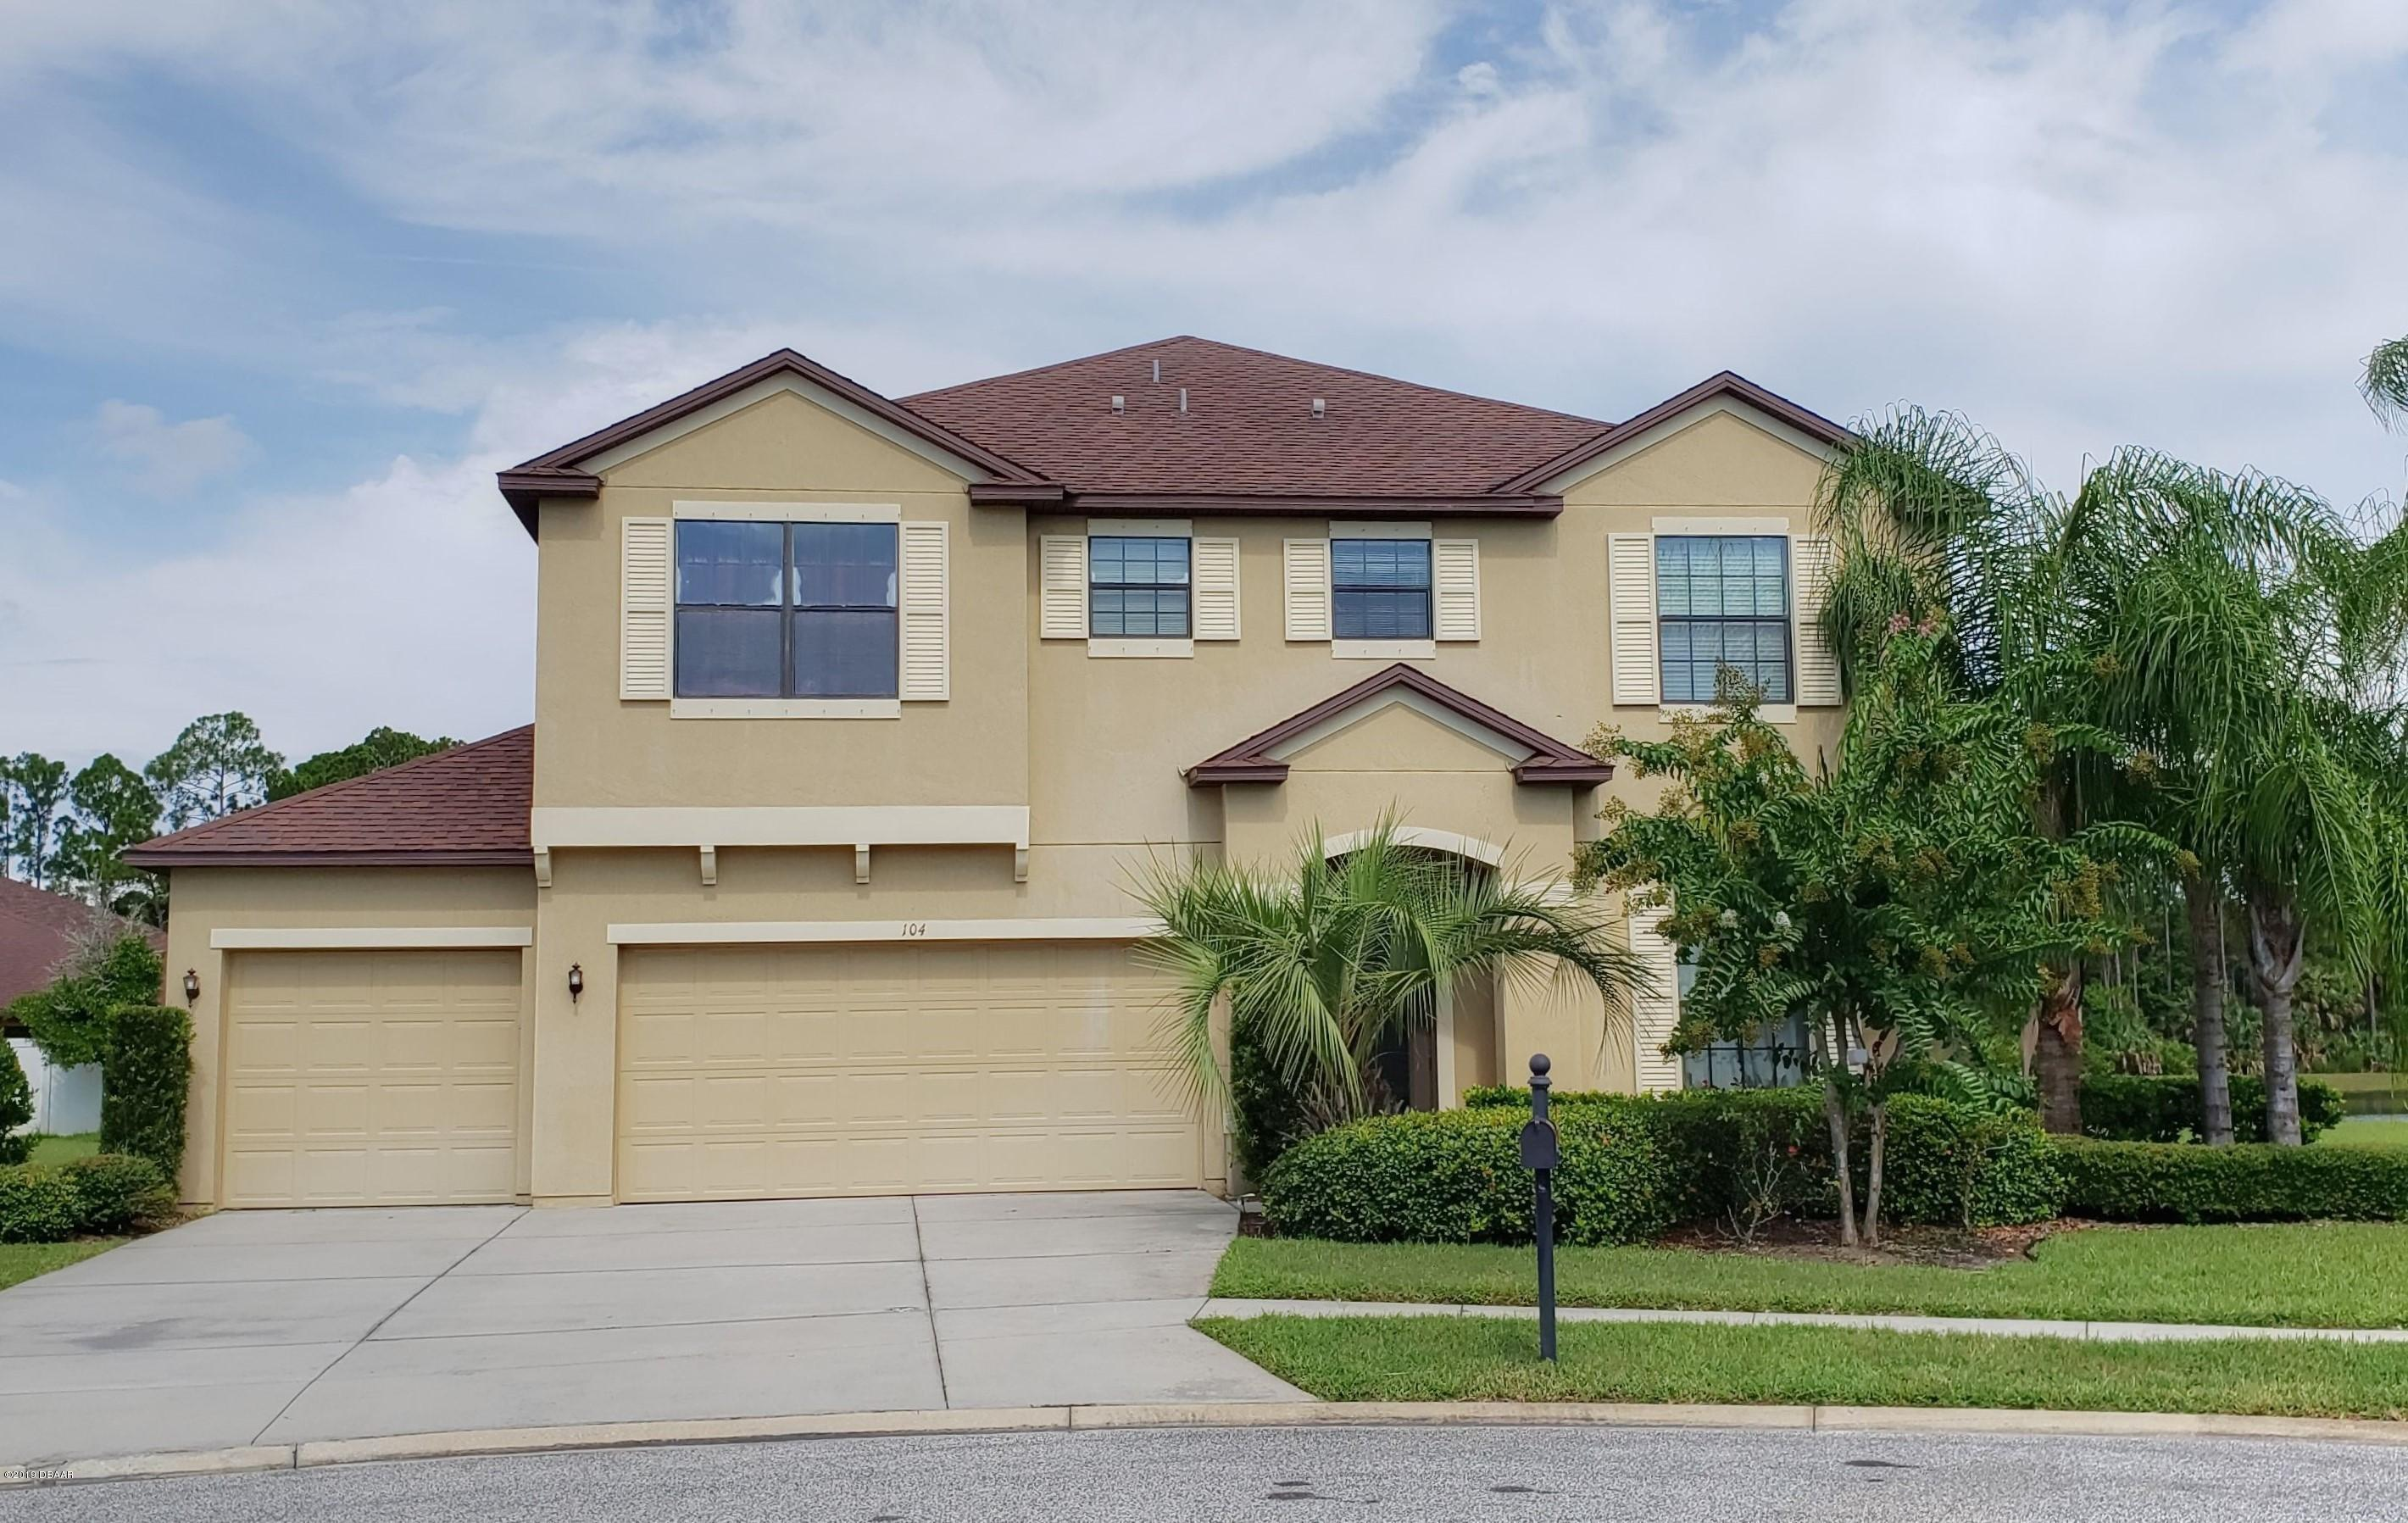 104 Cario Court, one of homes for sale in Holly Hill